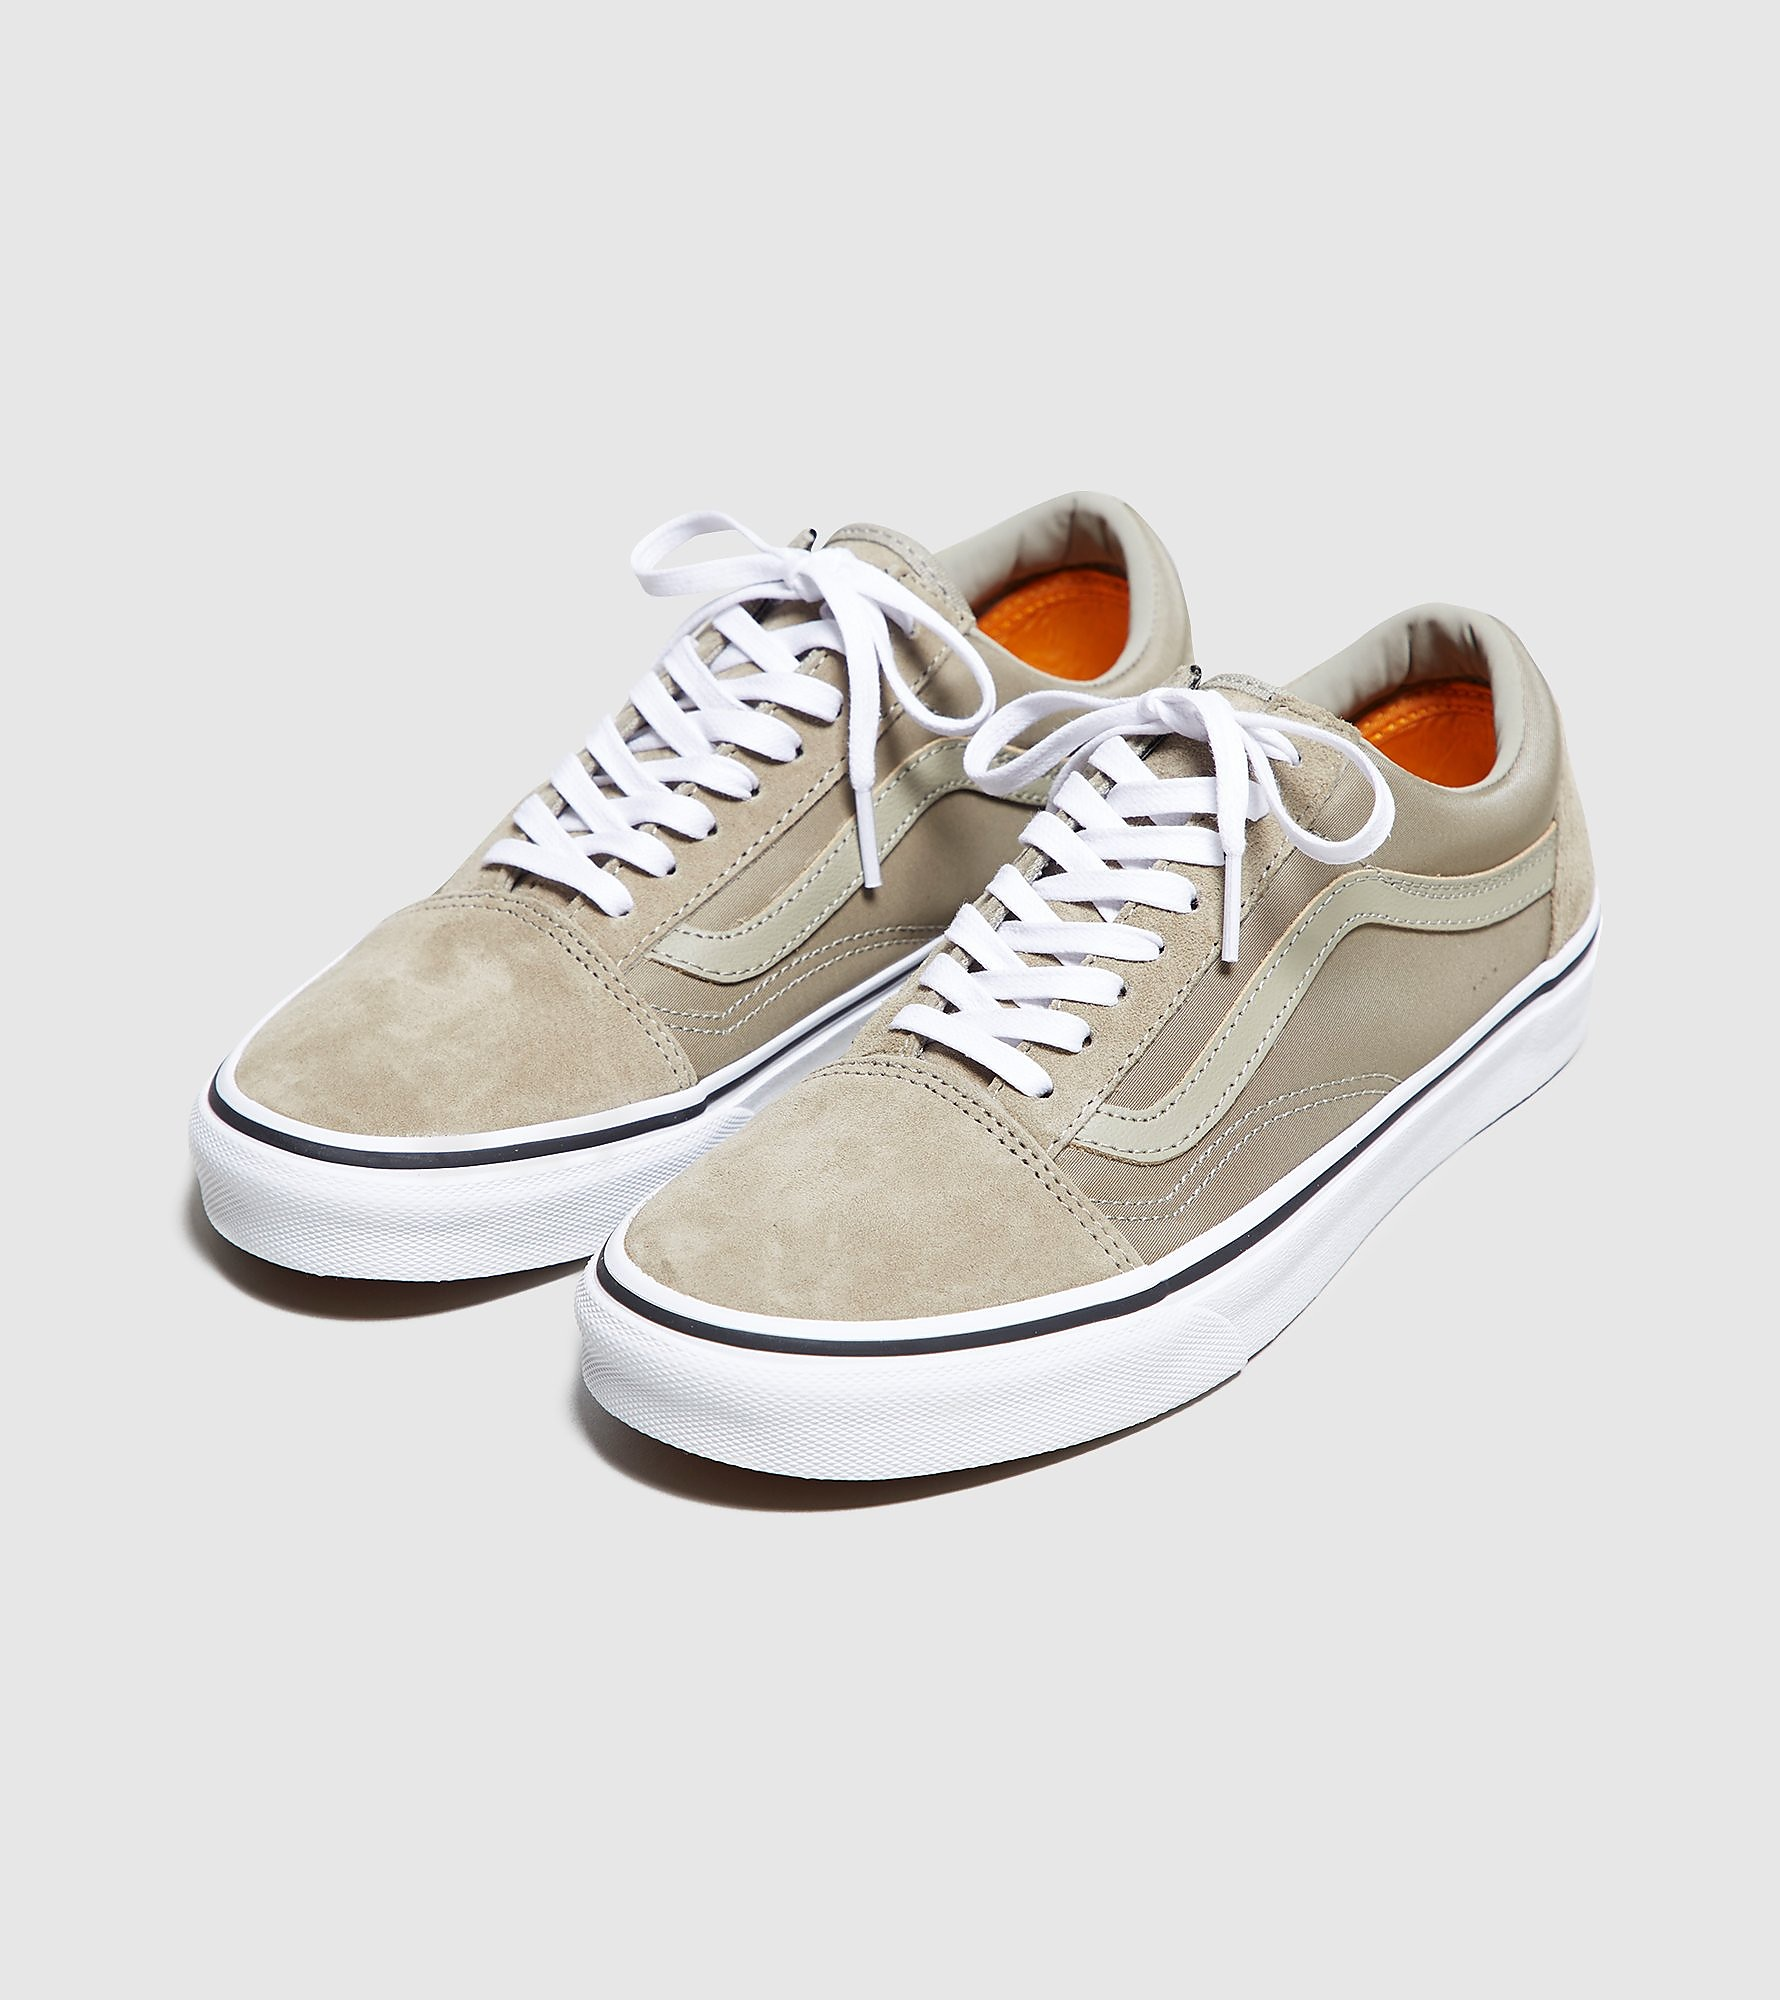 Vans Old Skool 'Boom Boom' Women's